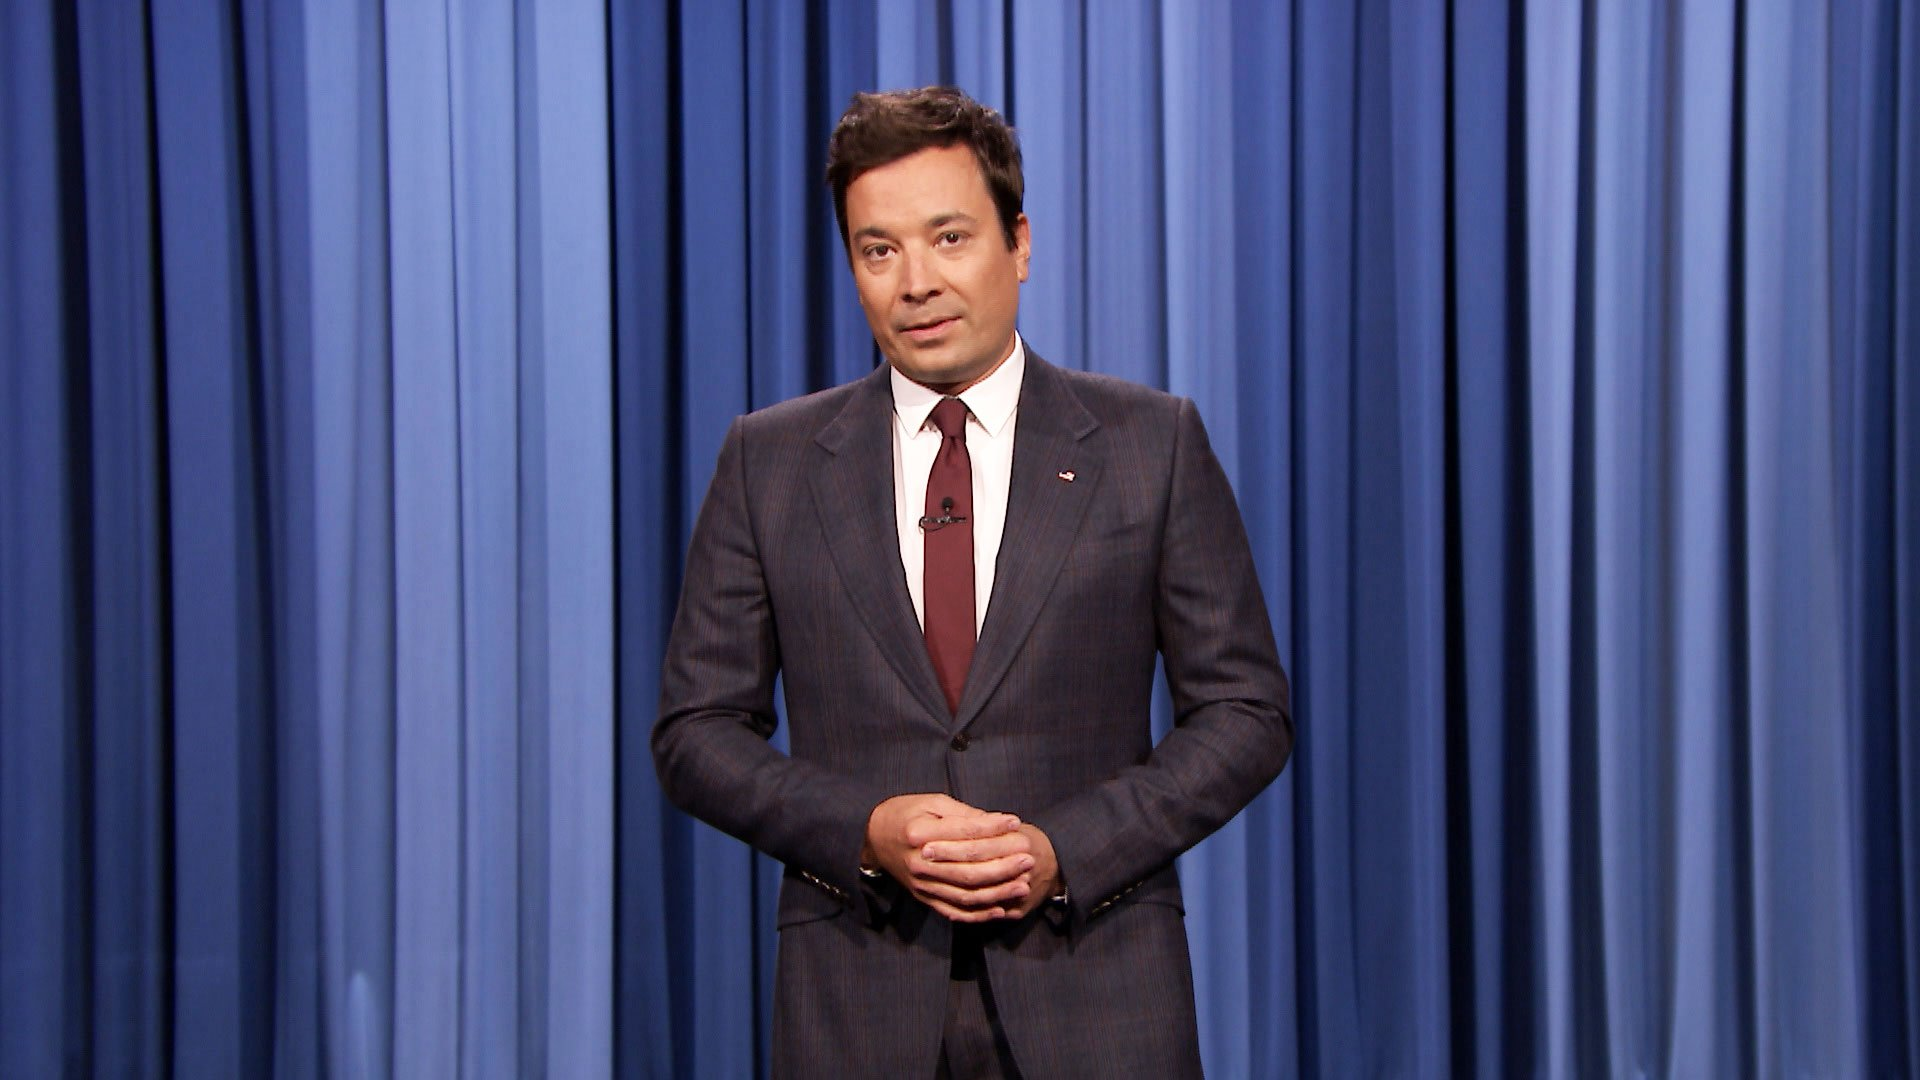 RT @FallonTonight: Jimmy takes a moment at the start of the show to address the events in #Charlottesville https://t.co/gCvv1OM8gq